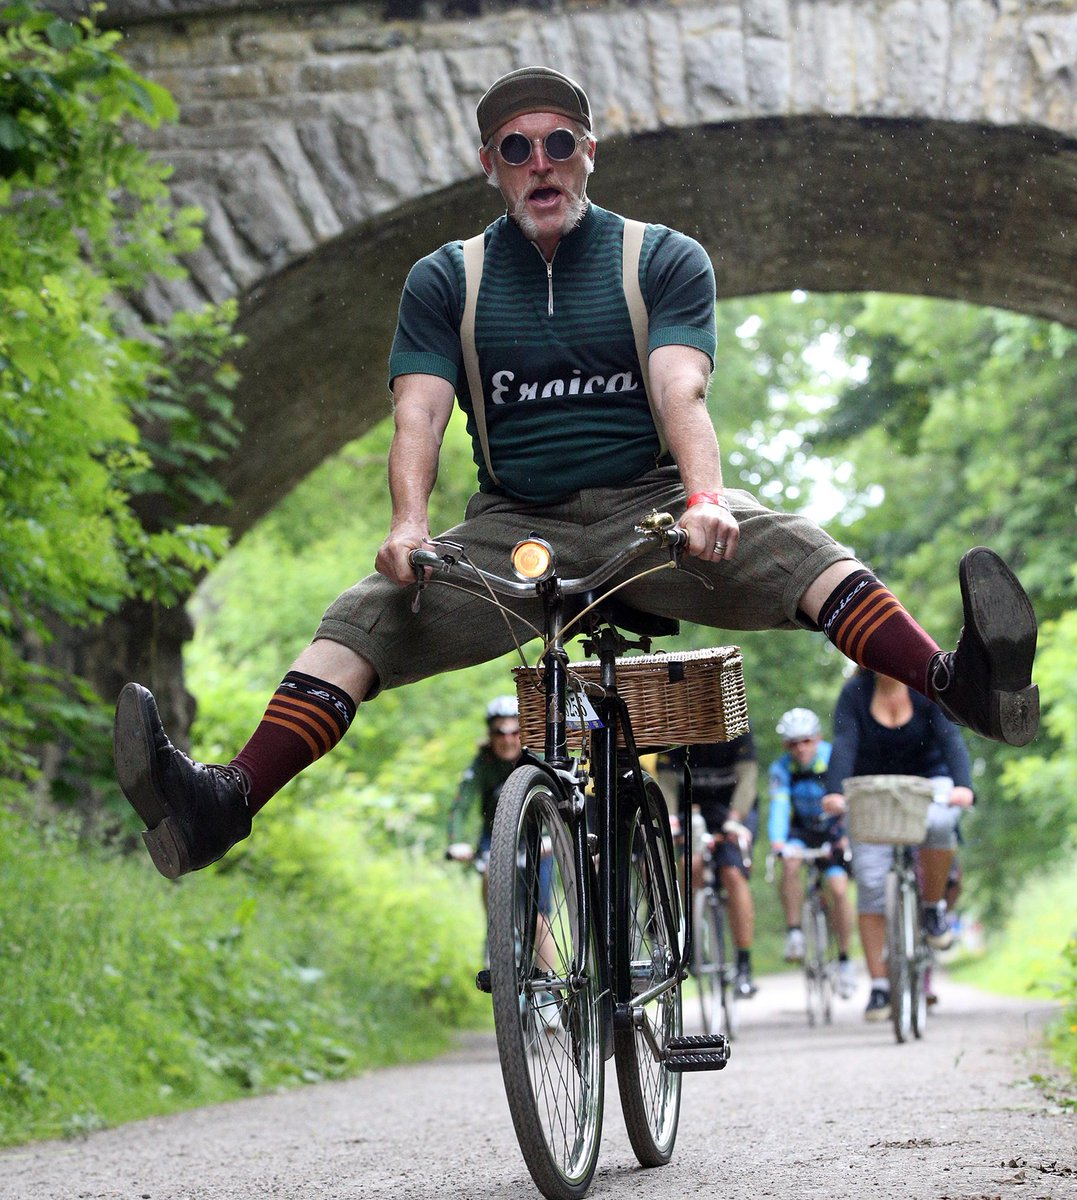 Join the World's Most Handsome Festival and #volunteer for #vitalresearch @EroicaBritannia! https://t.co/qhmj5N0eeG https://t.co/UjcPbnYU6j